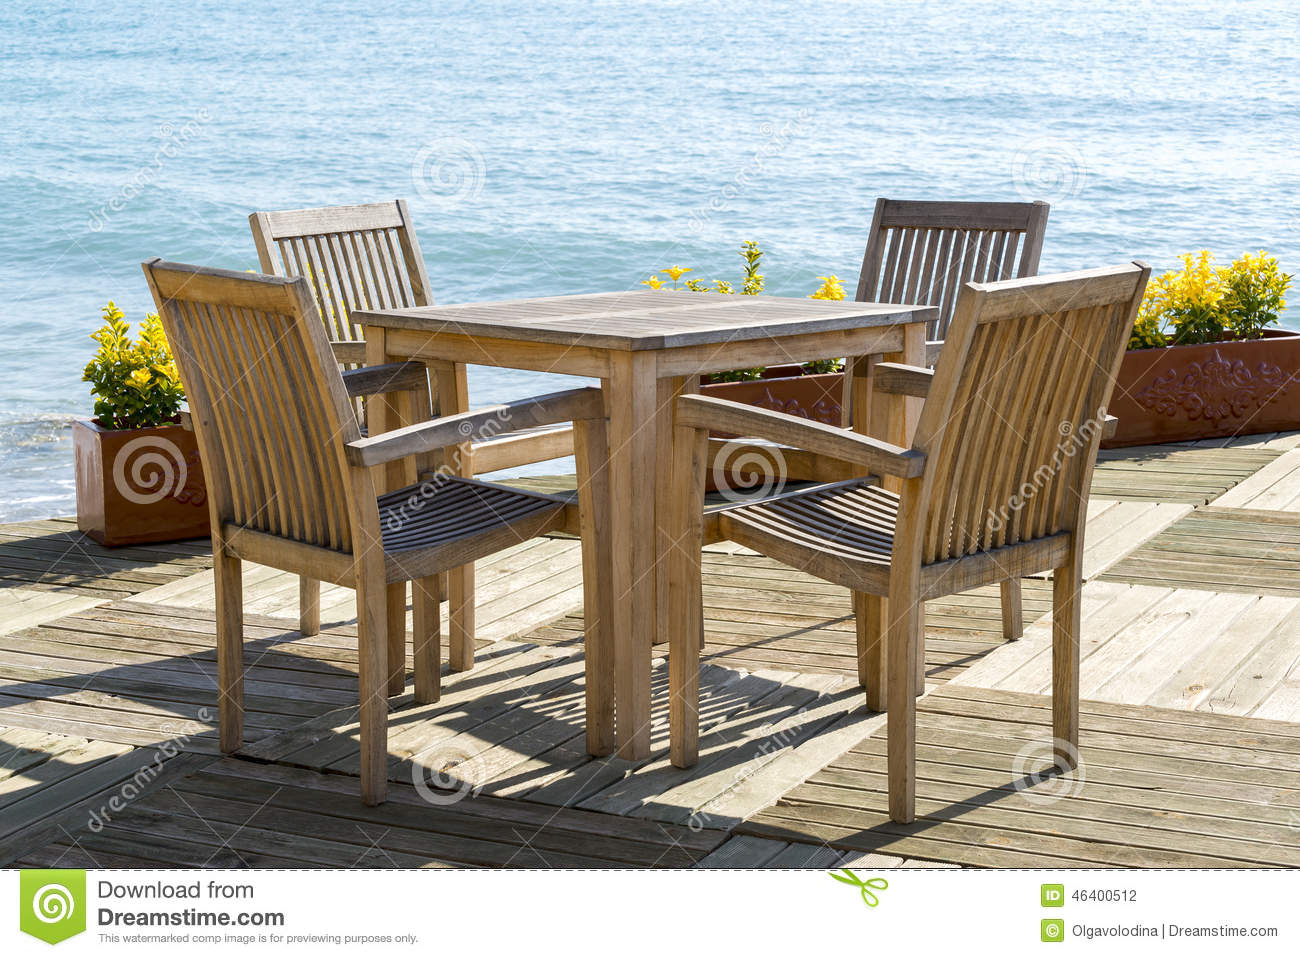 cafe chairs wooden ez hang with tables and at seaside stock photo